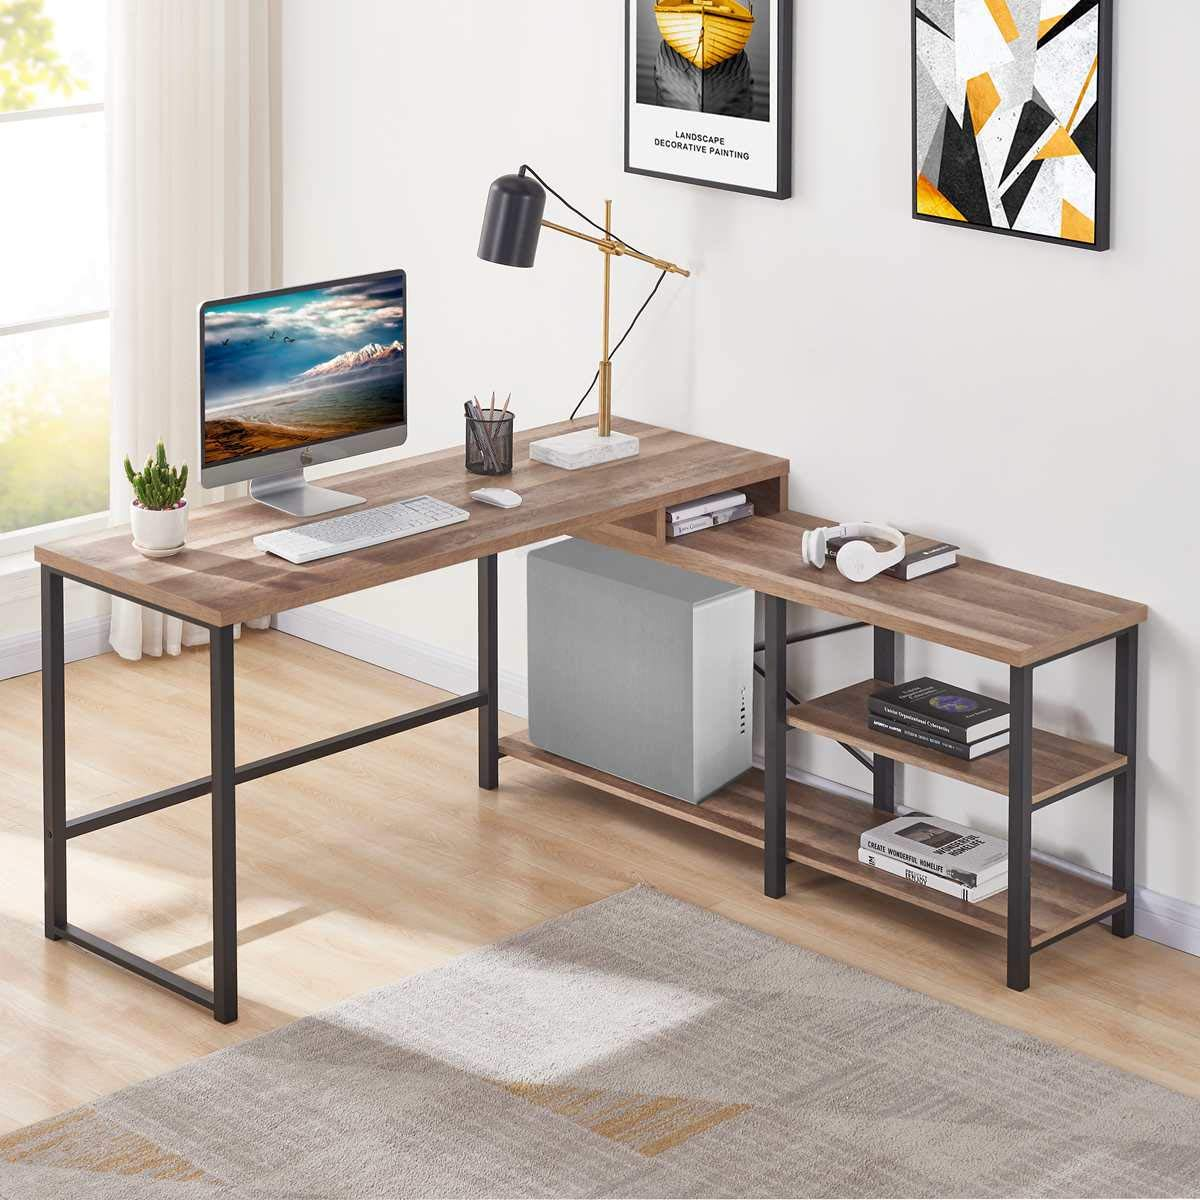 BON AUGURE L Shaped Corner Desk, Wood and Metal Computer Desk with Storage Shelf, Industrial Workstation Writing Table for Home Office (59 Inch, Rustic Oak) by BON AUGURE